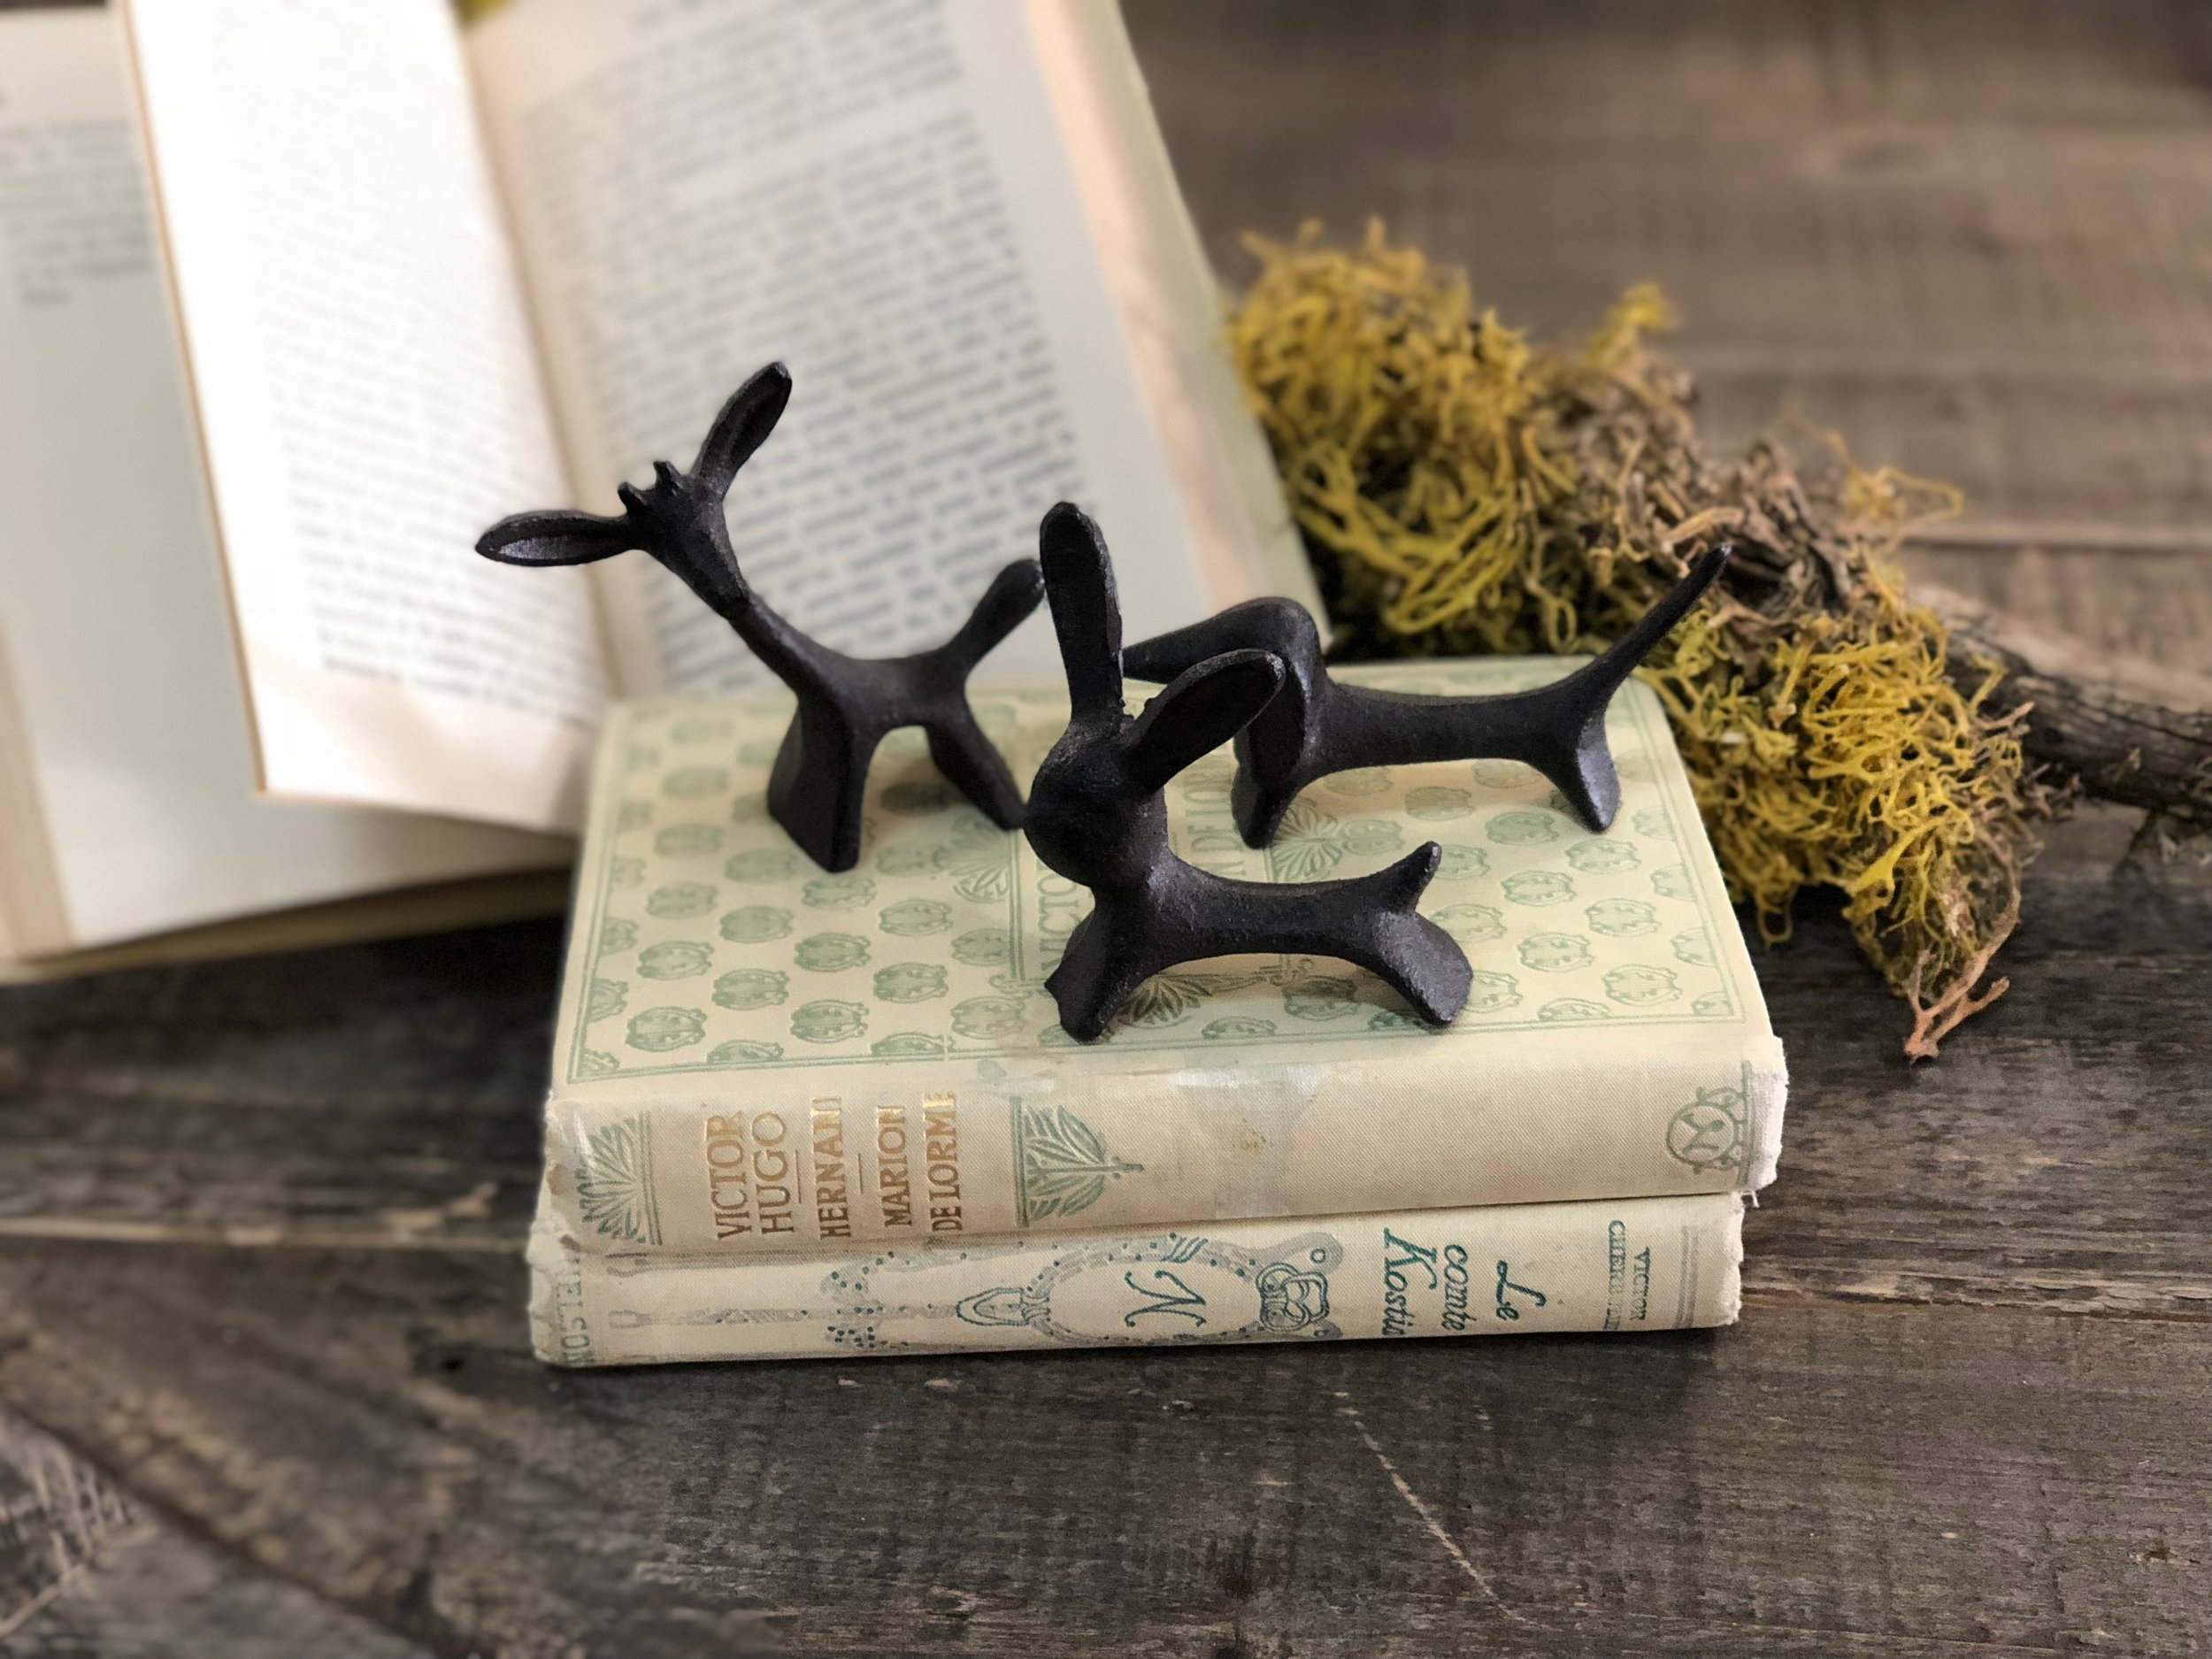 Skapning Brass Creatures - A dog, a bunny and a giraffe walked into a bar… so you put them in your pocket and brought them home! Bring a bit of utilitarian whimsy to your bookshelf or table top with these wrought iron creatures. Ask them to hold your rings while you bake bread or perform open heart surgery. Adorable and dependable, just like your REAL dog, bunny and giraffe!